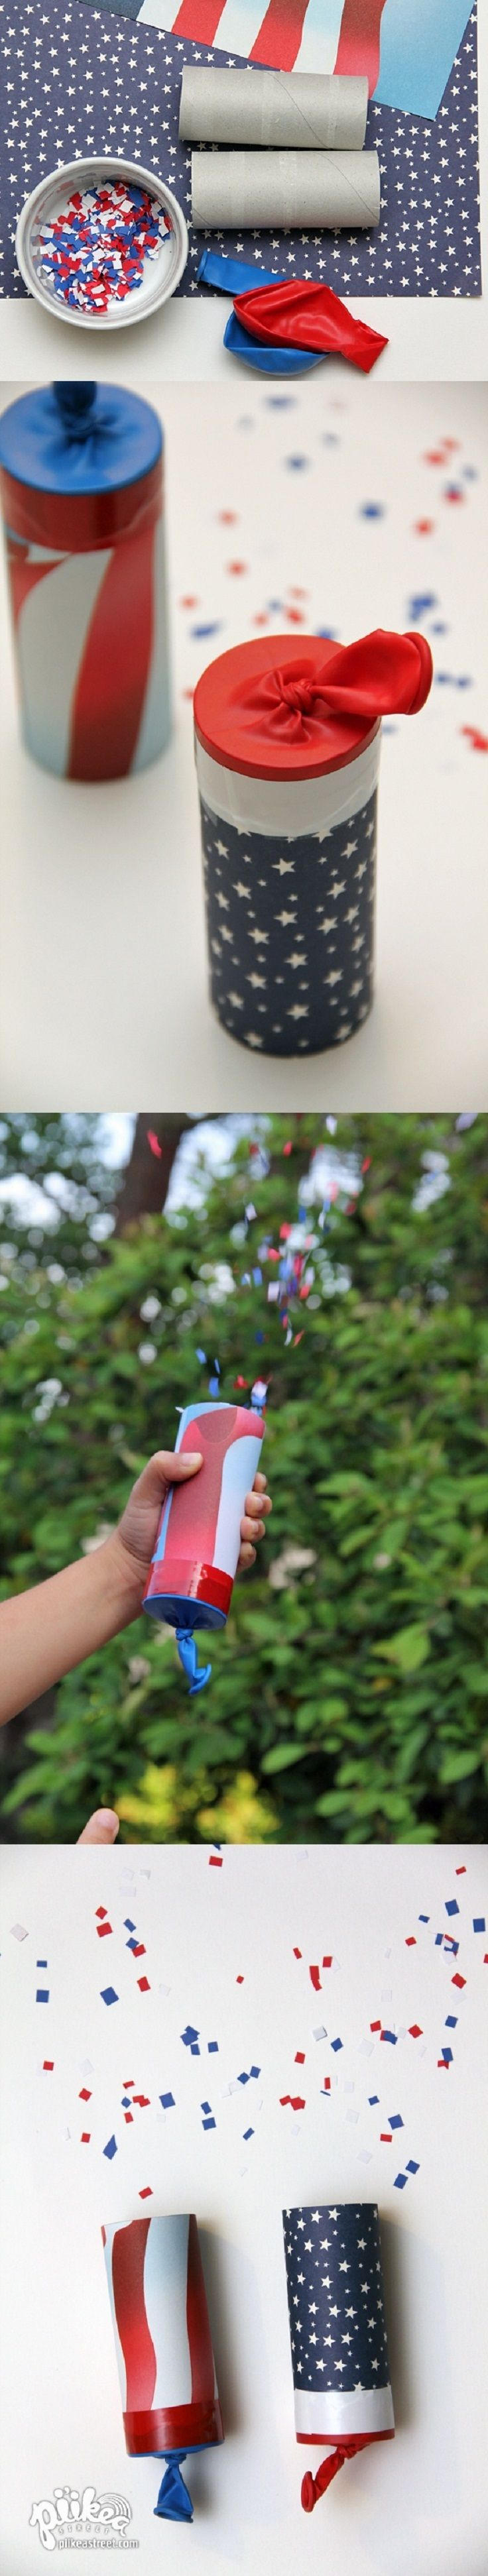 DIY Confetti Launchers - Simple to make and lots of fun to use! / Piikea Street